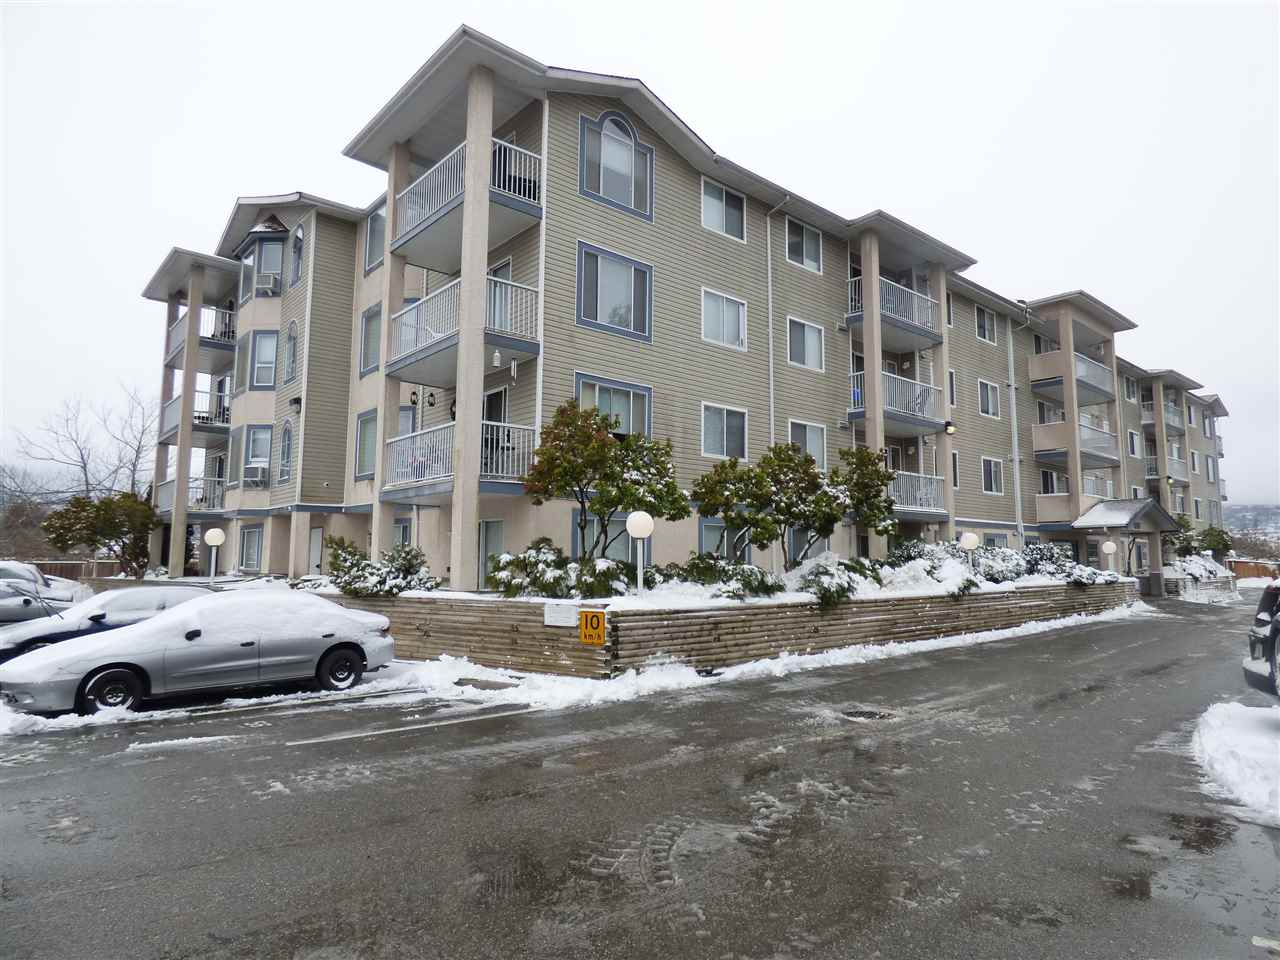 Main Photo: 207 8537 YOUNG Road in Chilliwack: Chilliwack W Young-Well Condo for sale : MLS® # R2231750